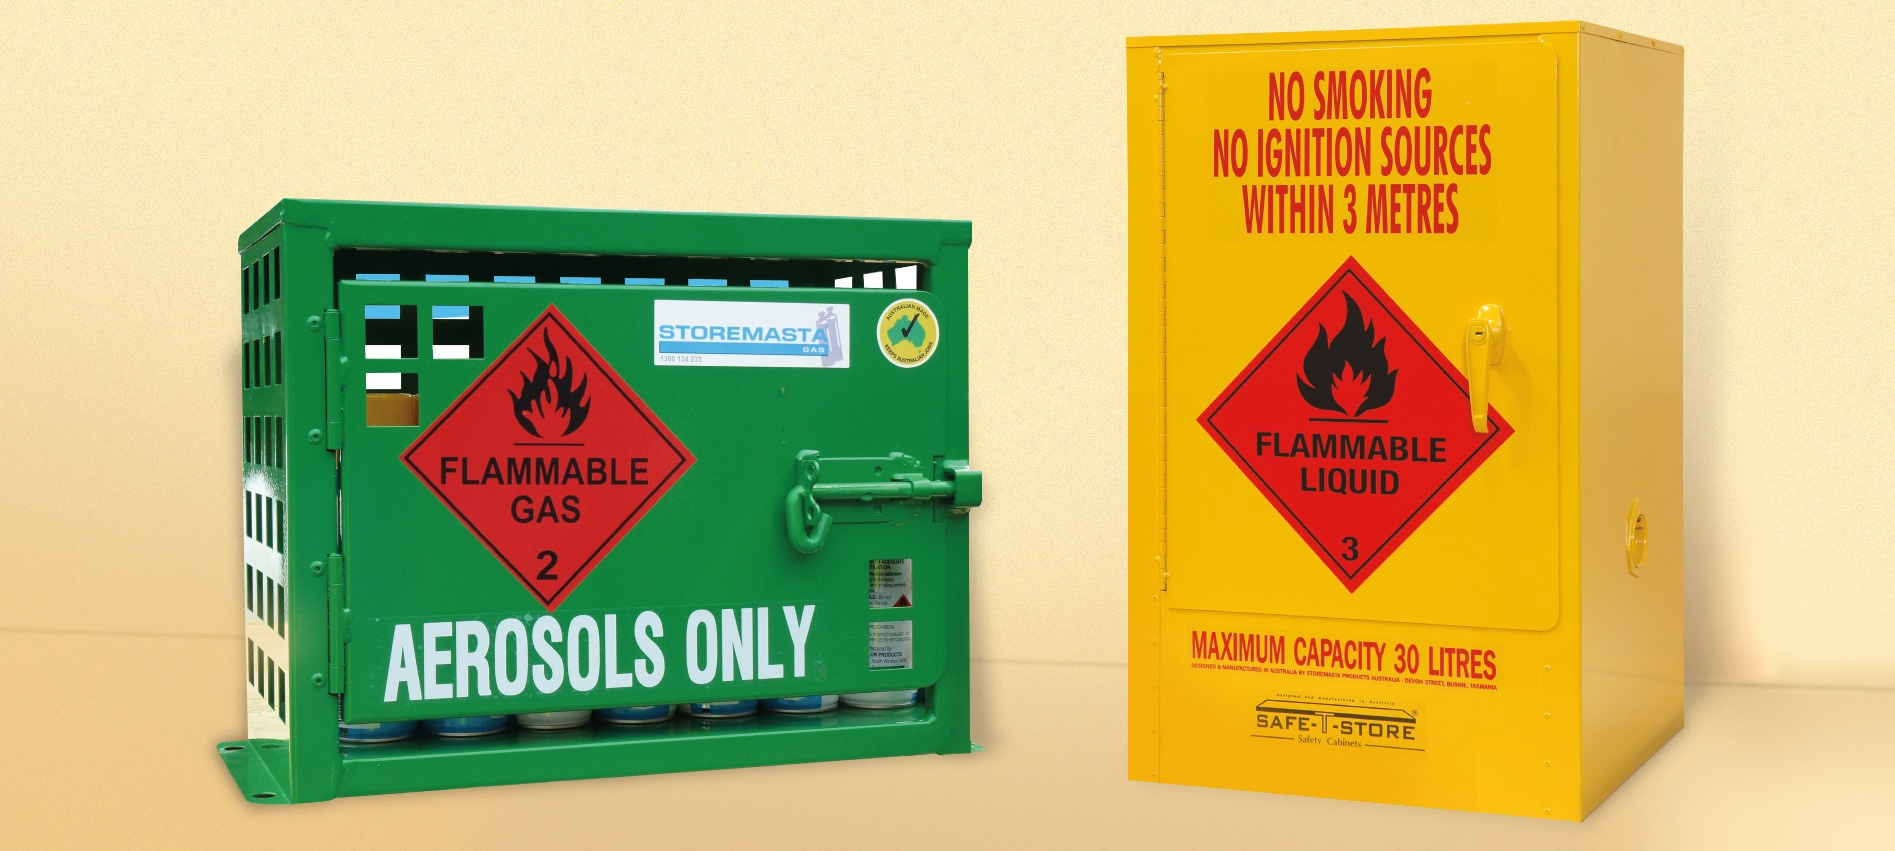 Storing Aerosols Correctly: aerosol cages vs flammable liquids cabinets